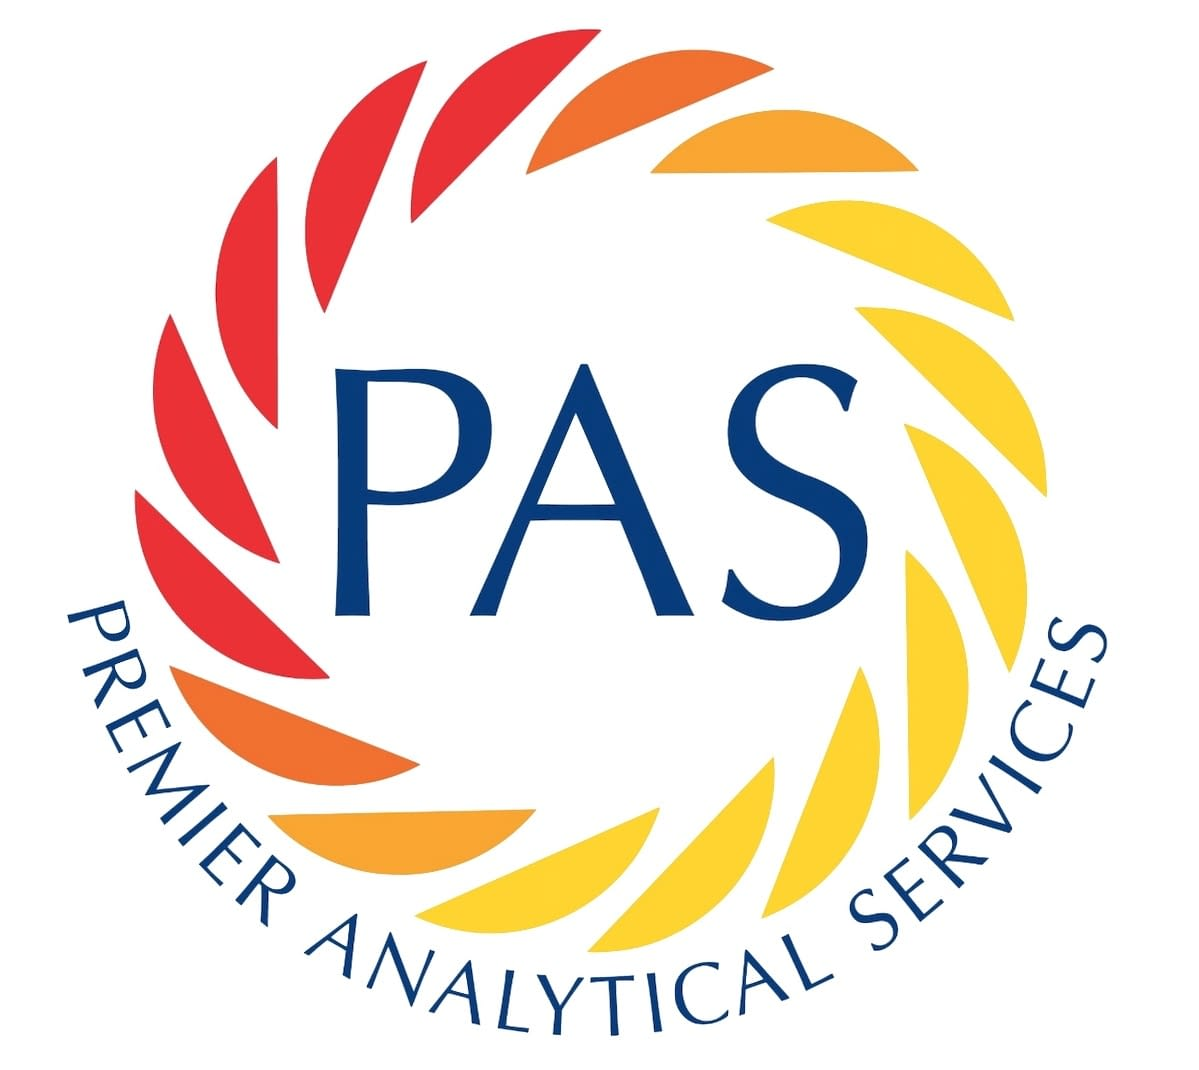 Premier Analytical Services